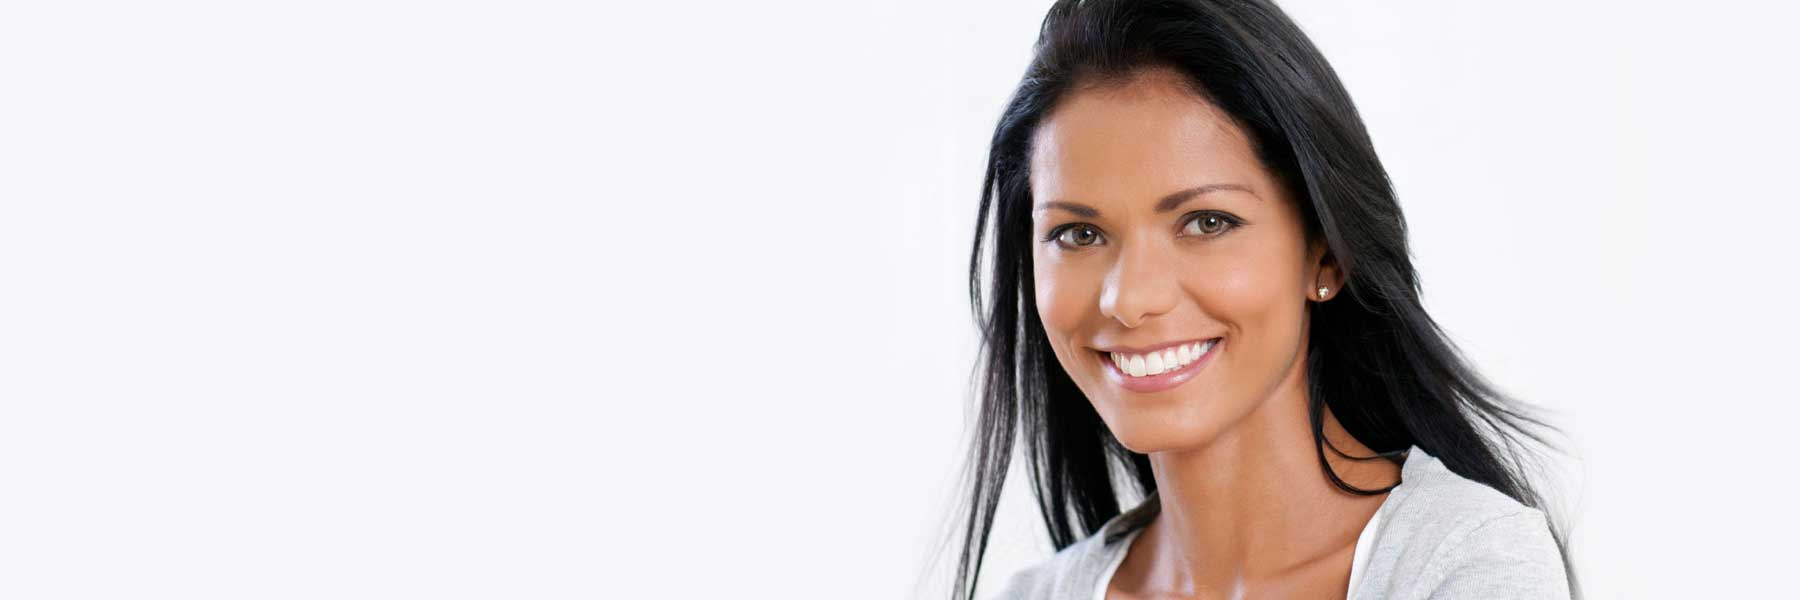 Cosmetic Dentist in Fayetteville, AR banner image